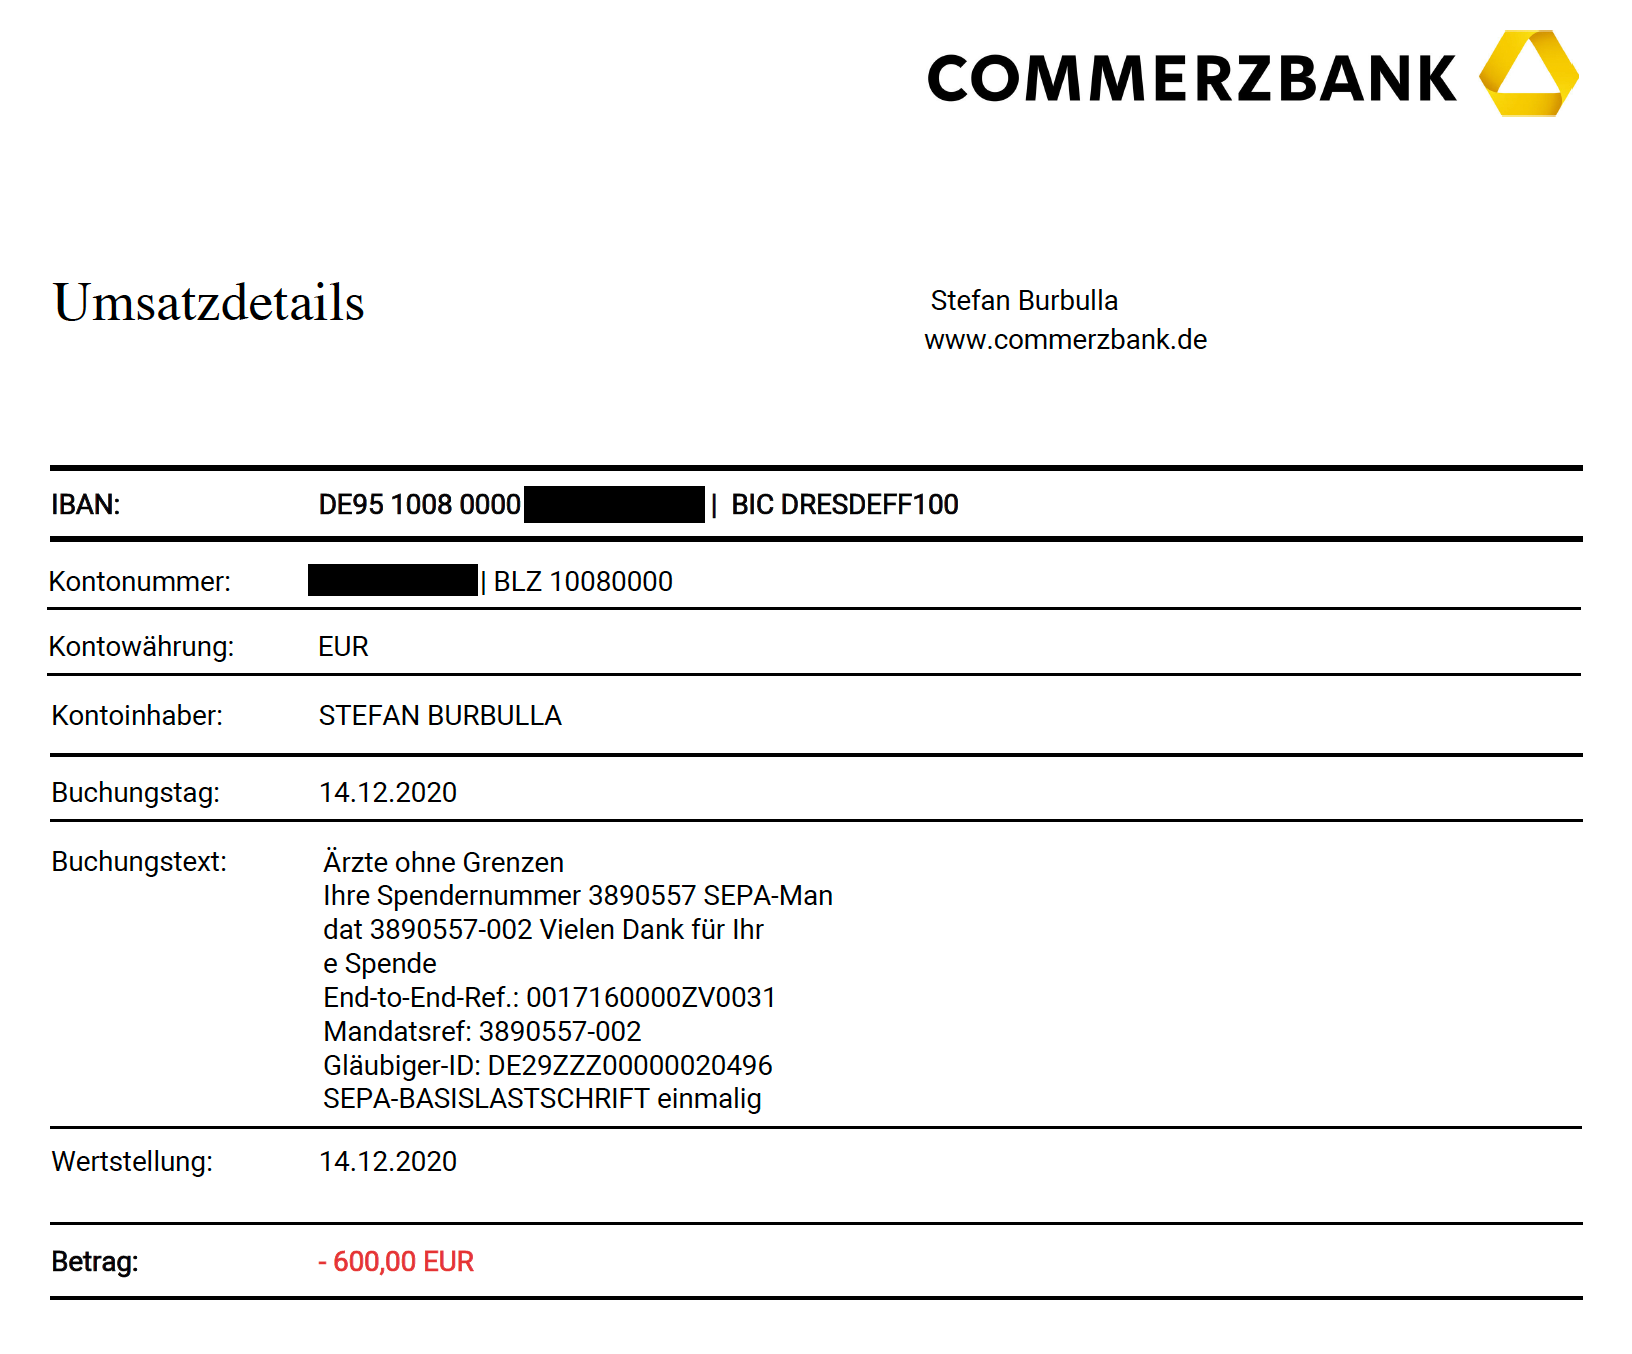 Bank statement MSF Q3 and Q4 2020